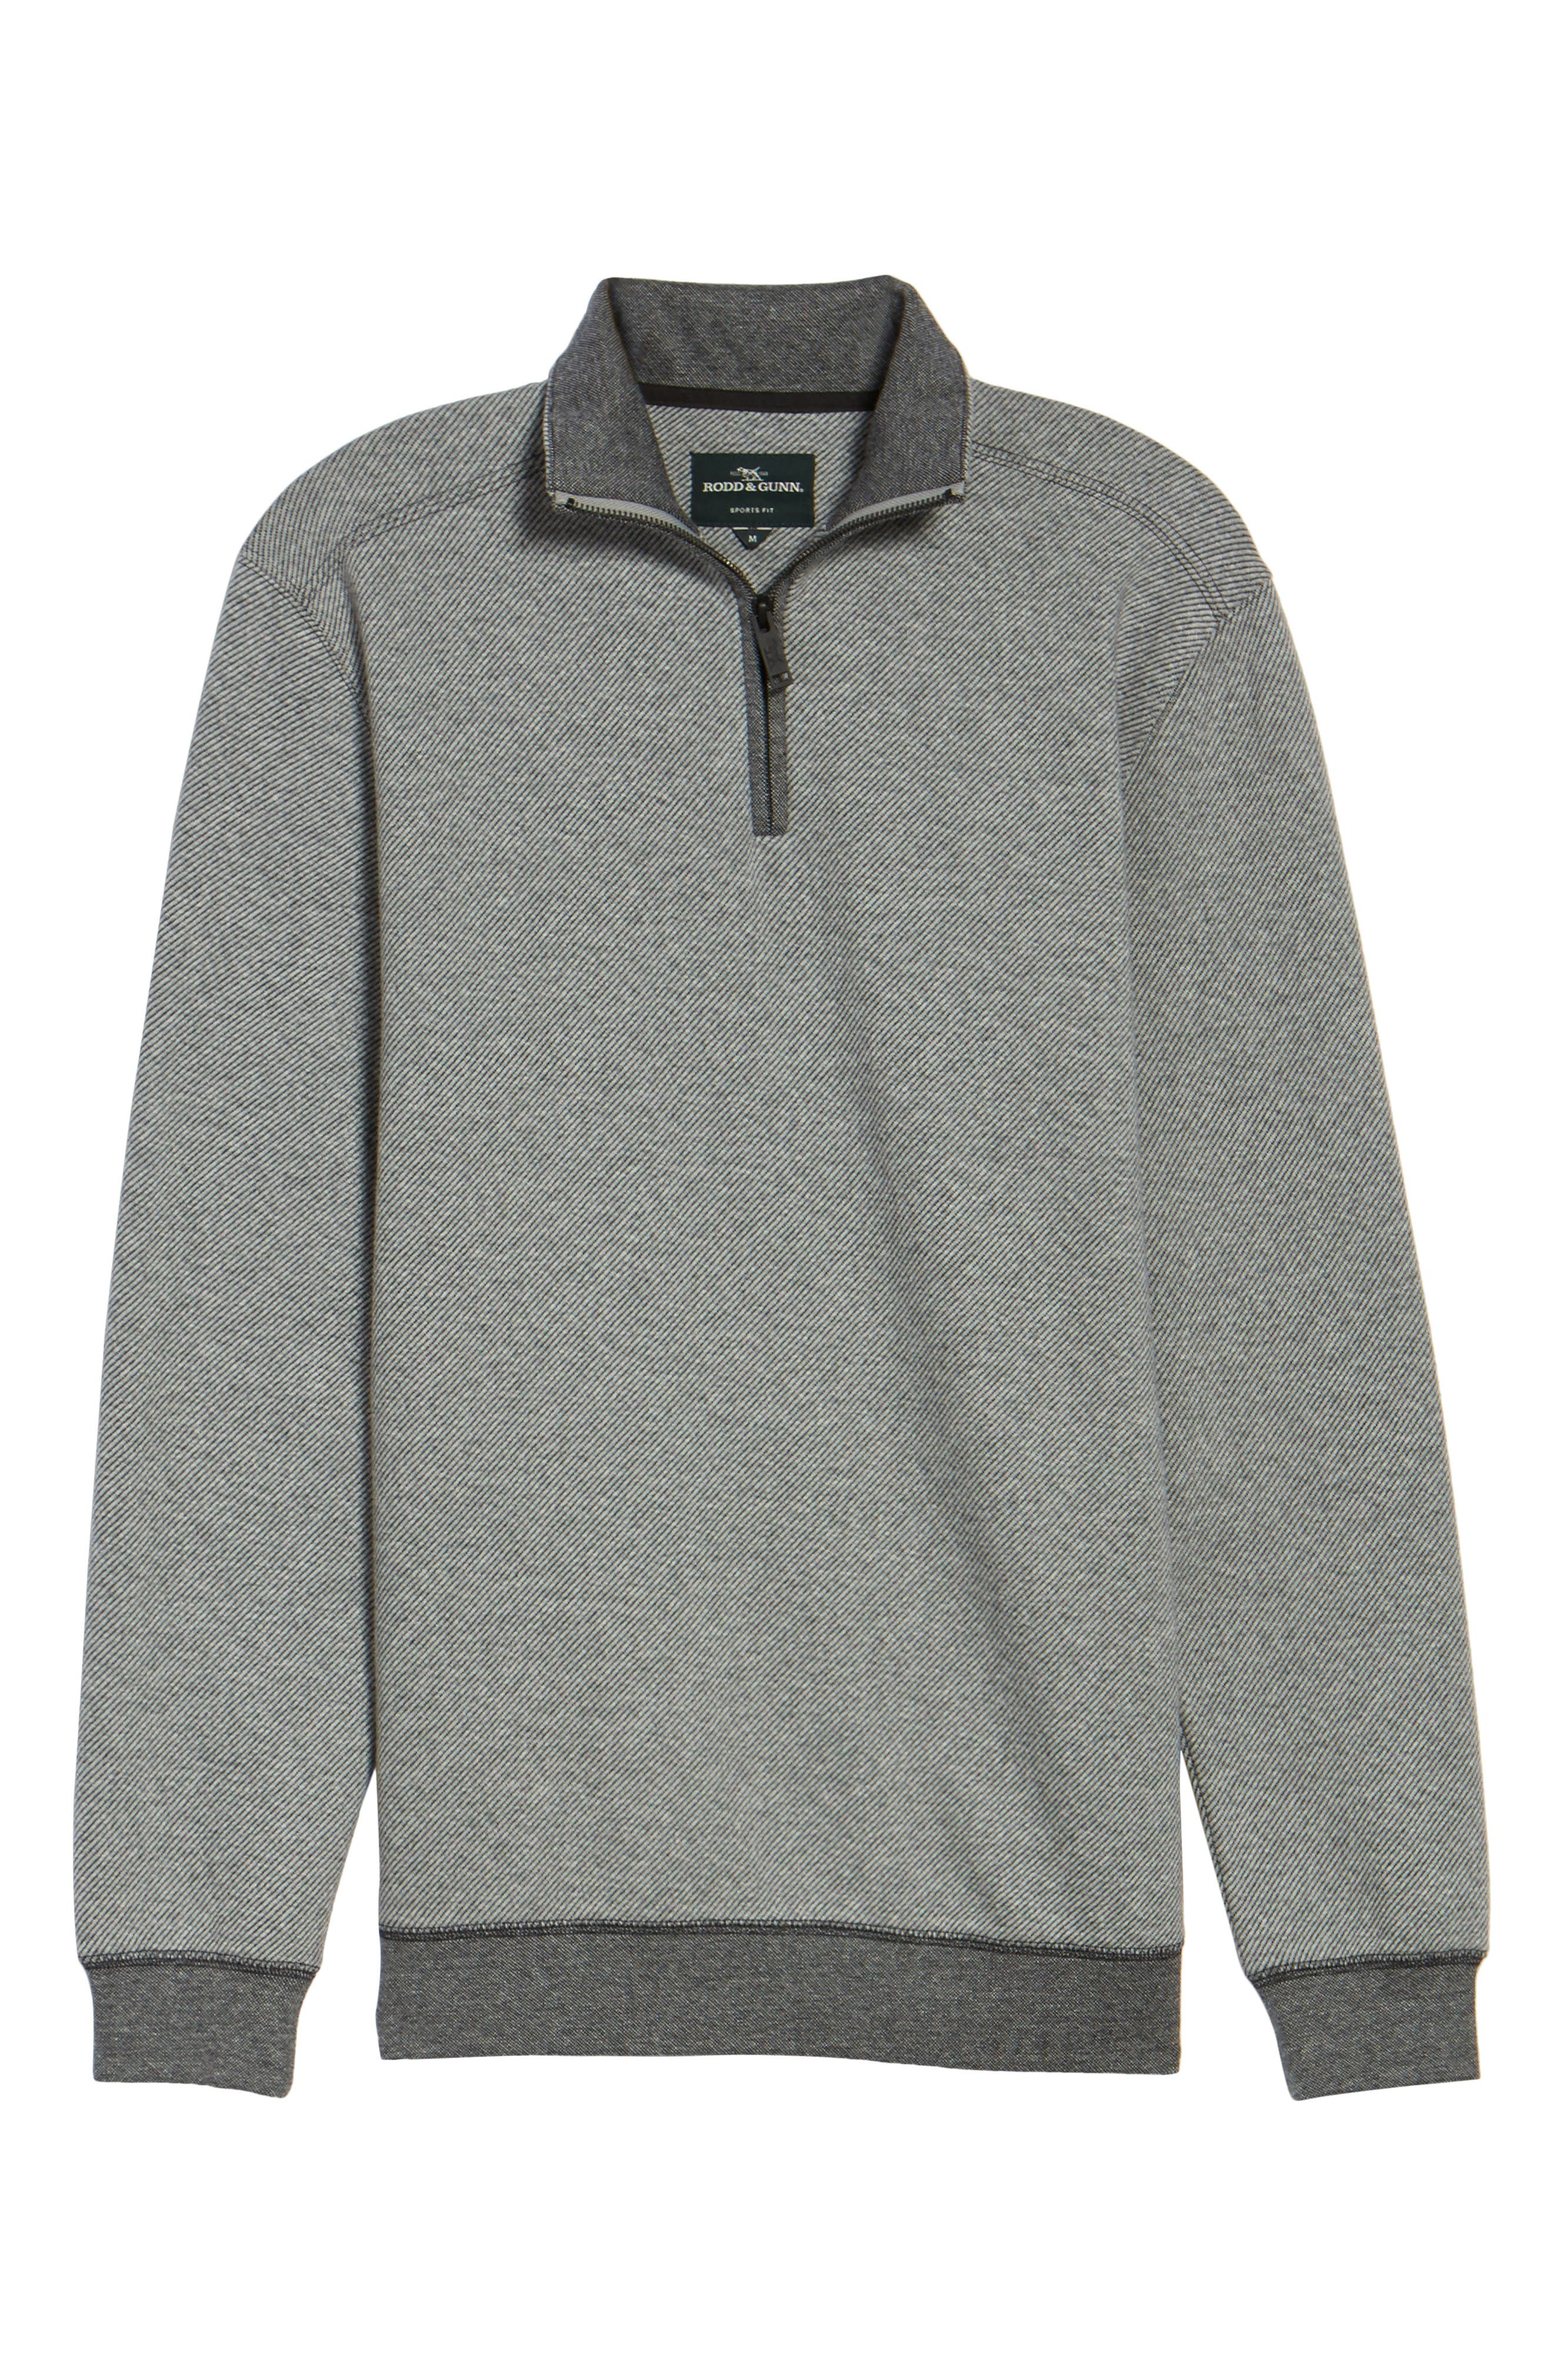 Meyer Desert Quarter Zip Pullover,                             Alternate thumbnail 6, color,                             Smoke